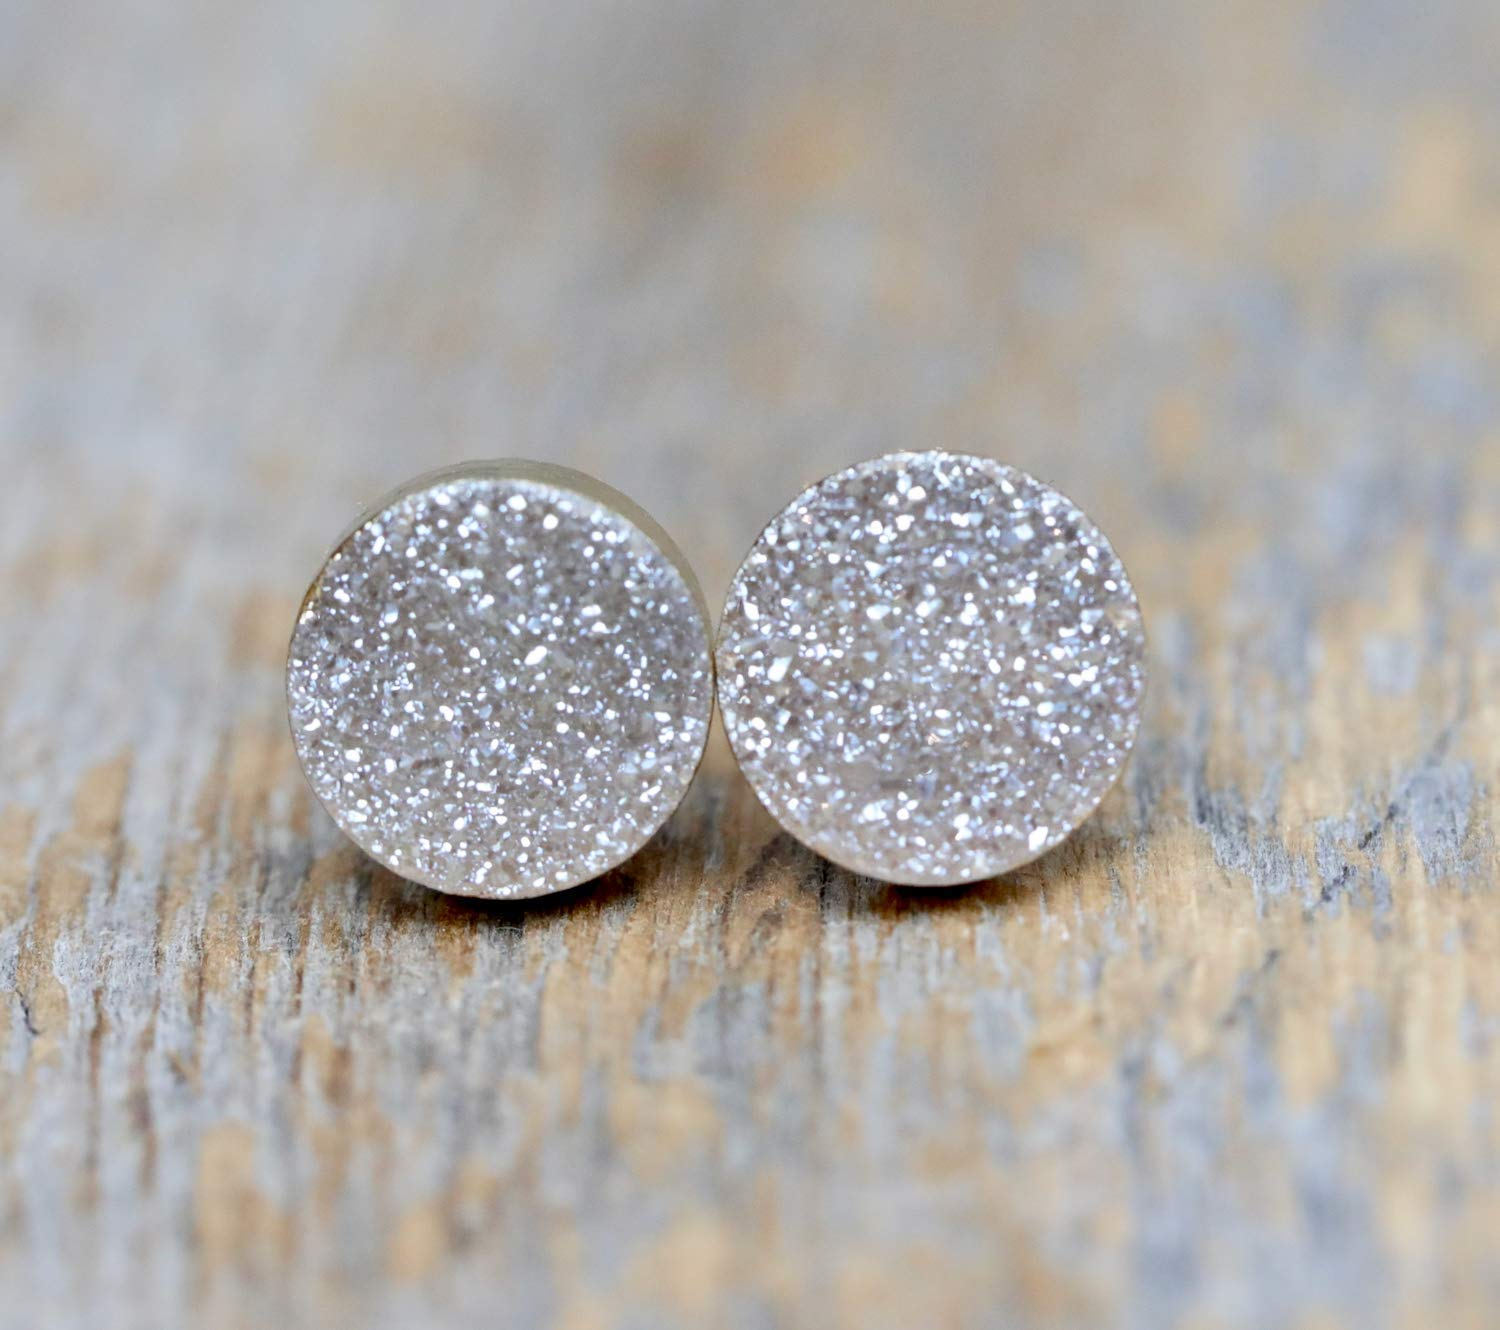 694018 Green Druzy Earring Studs Dipped in Sterling Silver-10mm Round Sparkling Gemstone Earring Studs-Gifts for Her-Wholesale Findings SKU